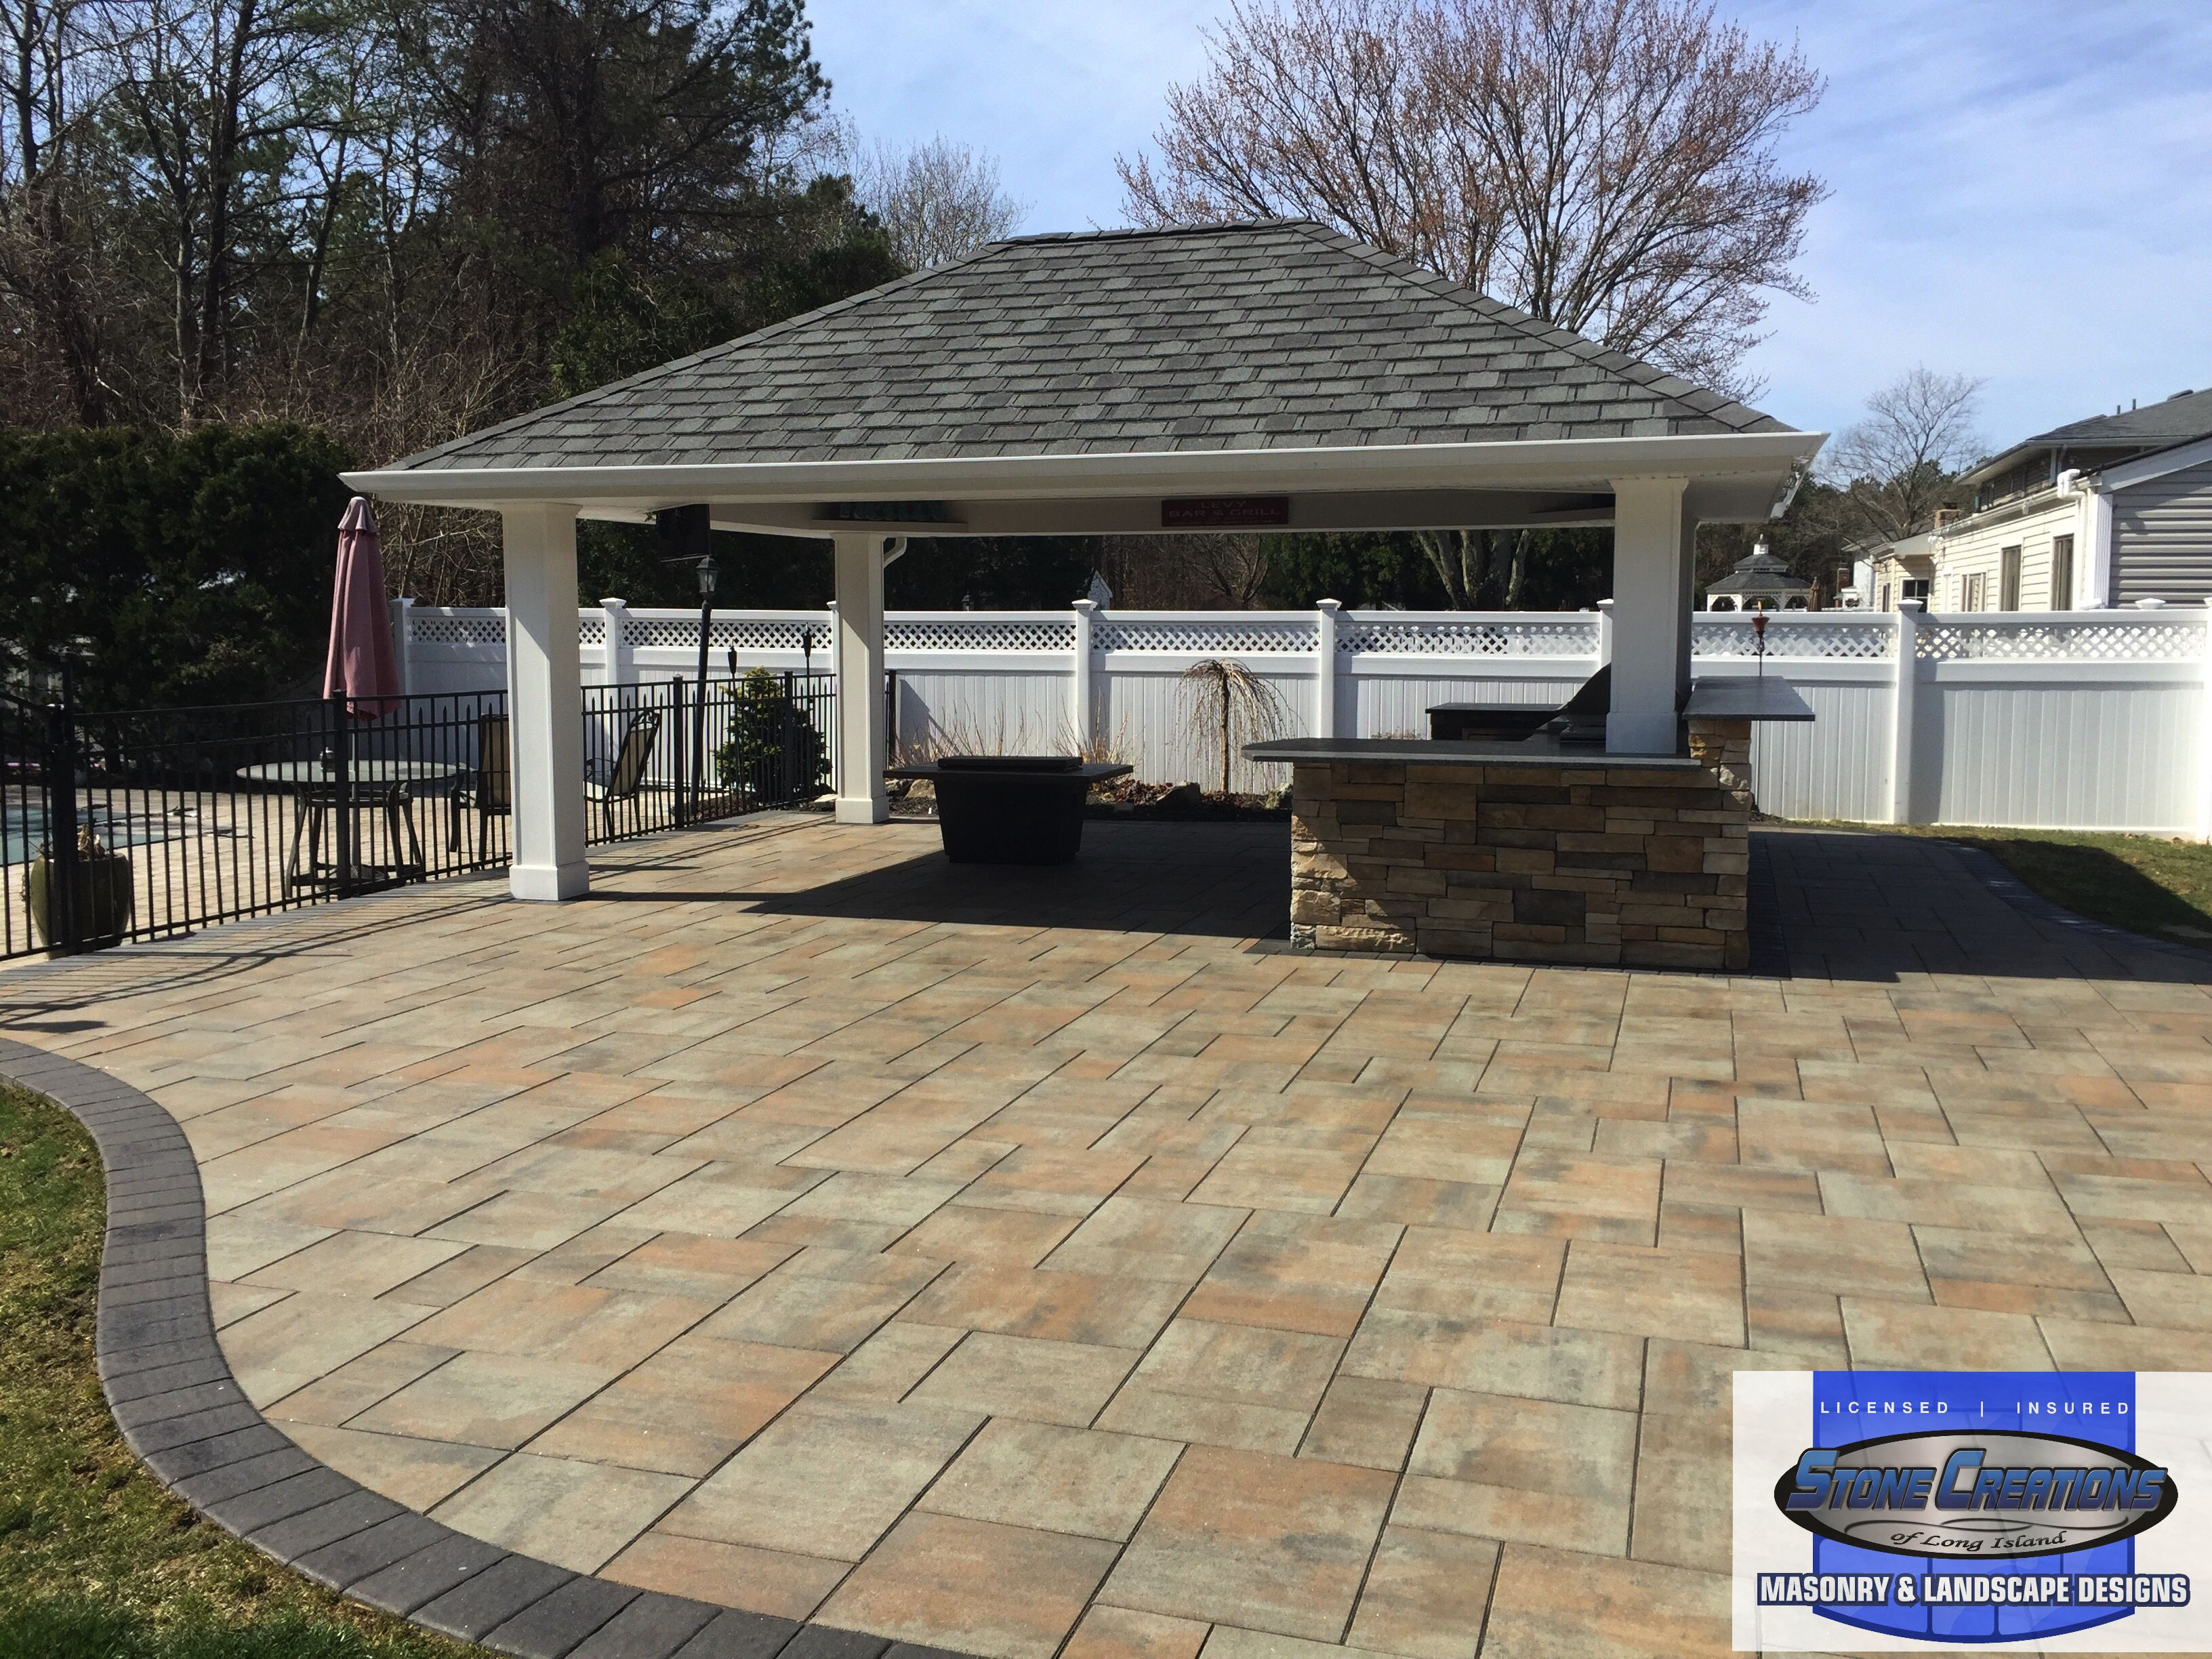 Some of the benefits of Paver Sealing •Inhibits weeds and